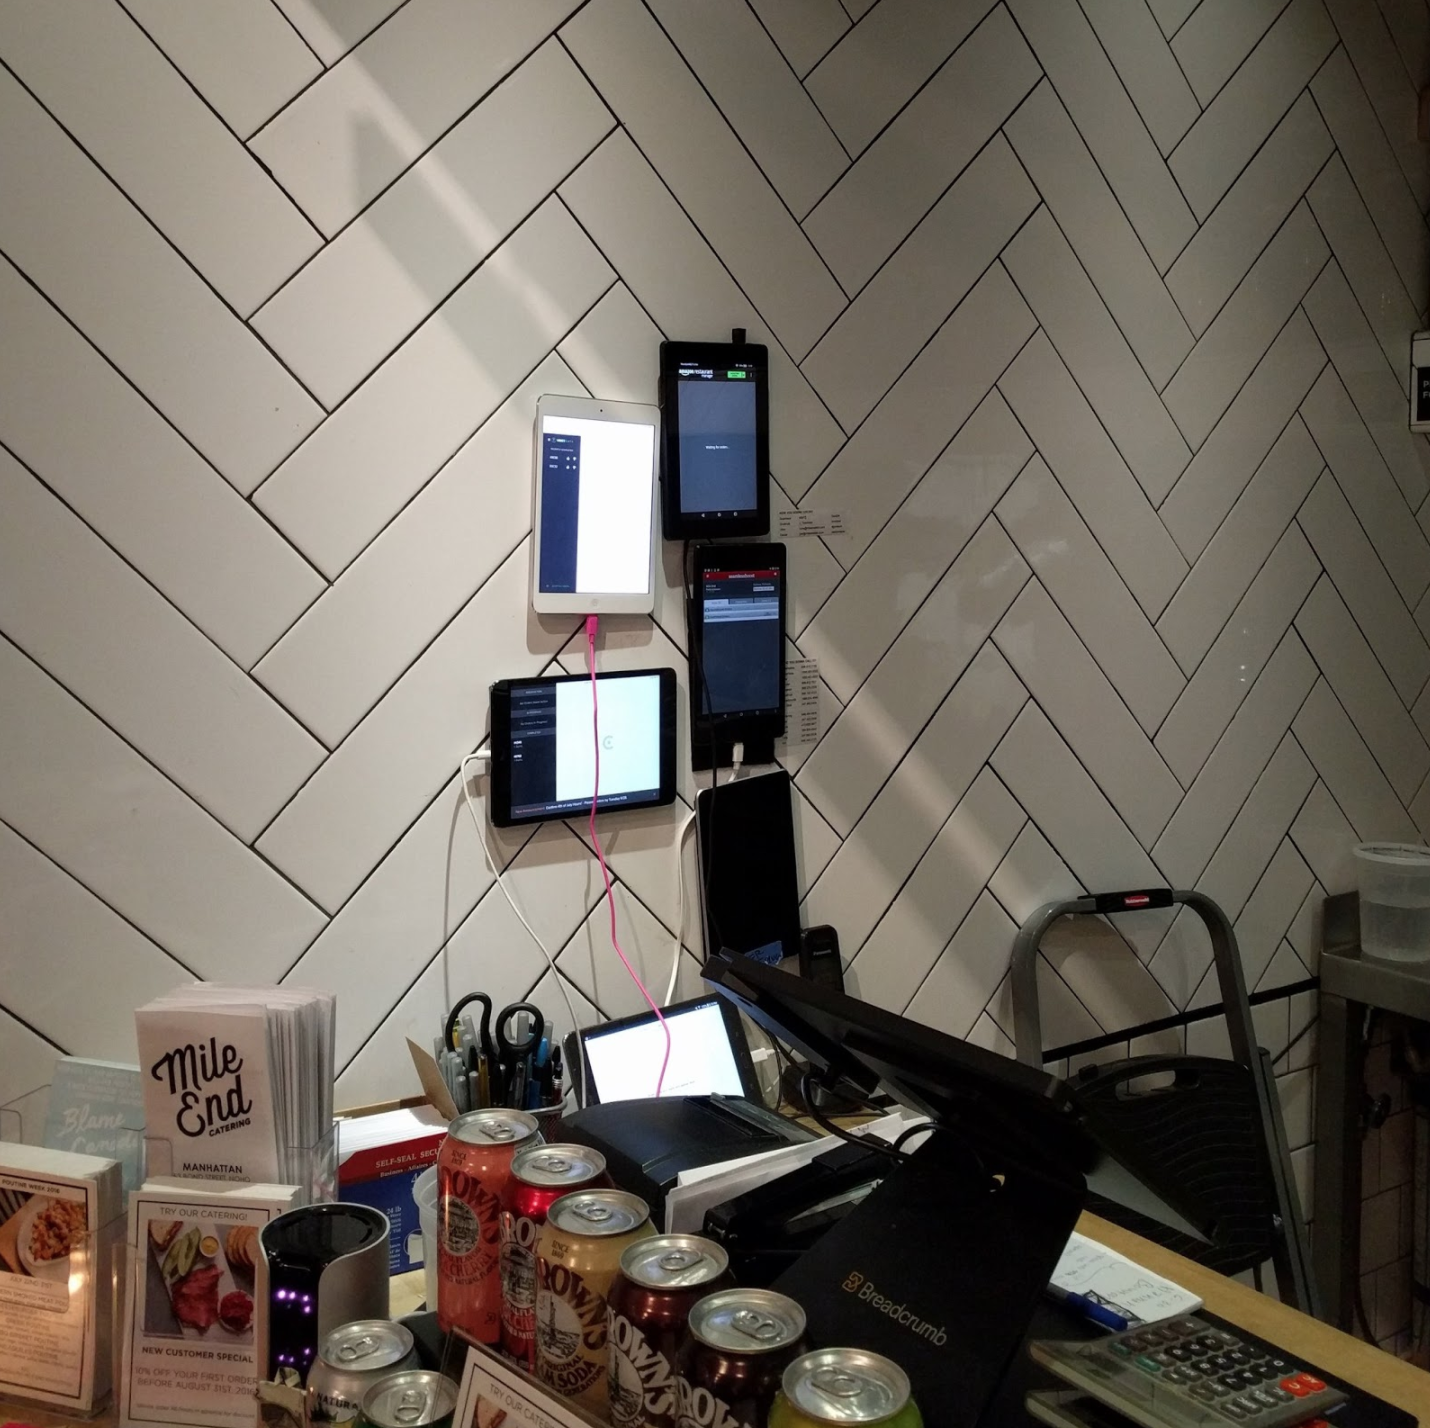 Multiple iPads for Seamless, Grubhub, Amazon, Foodkick, Uber Food hang on the wall of a restaurant, where a service worker takes orders.